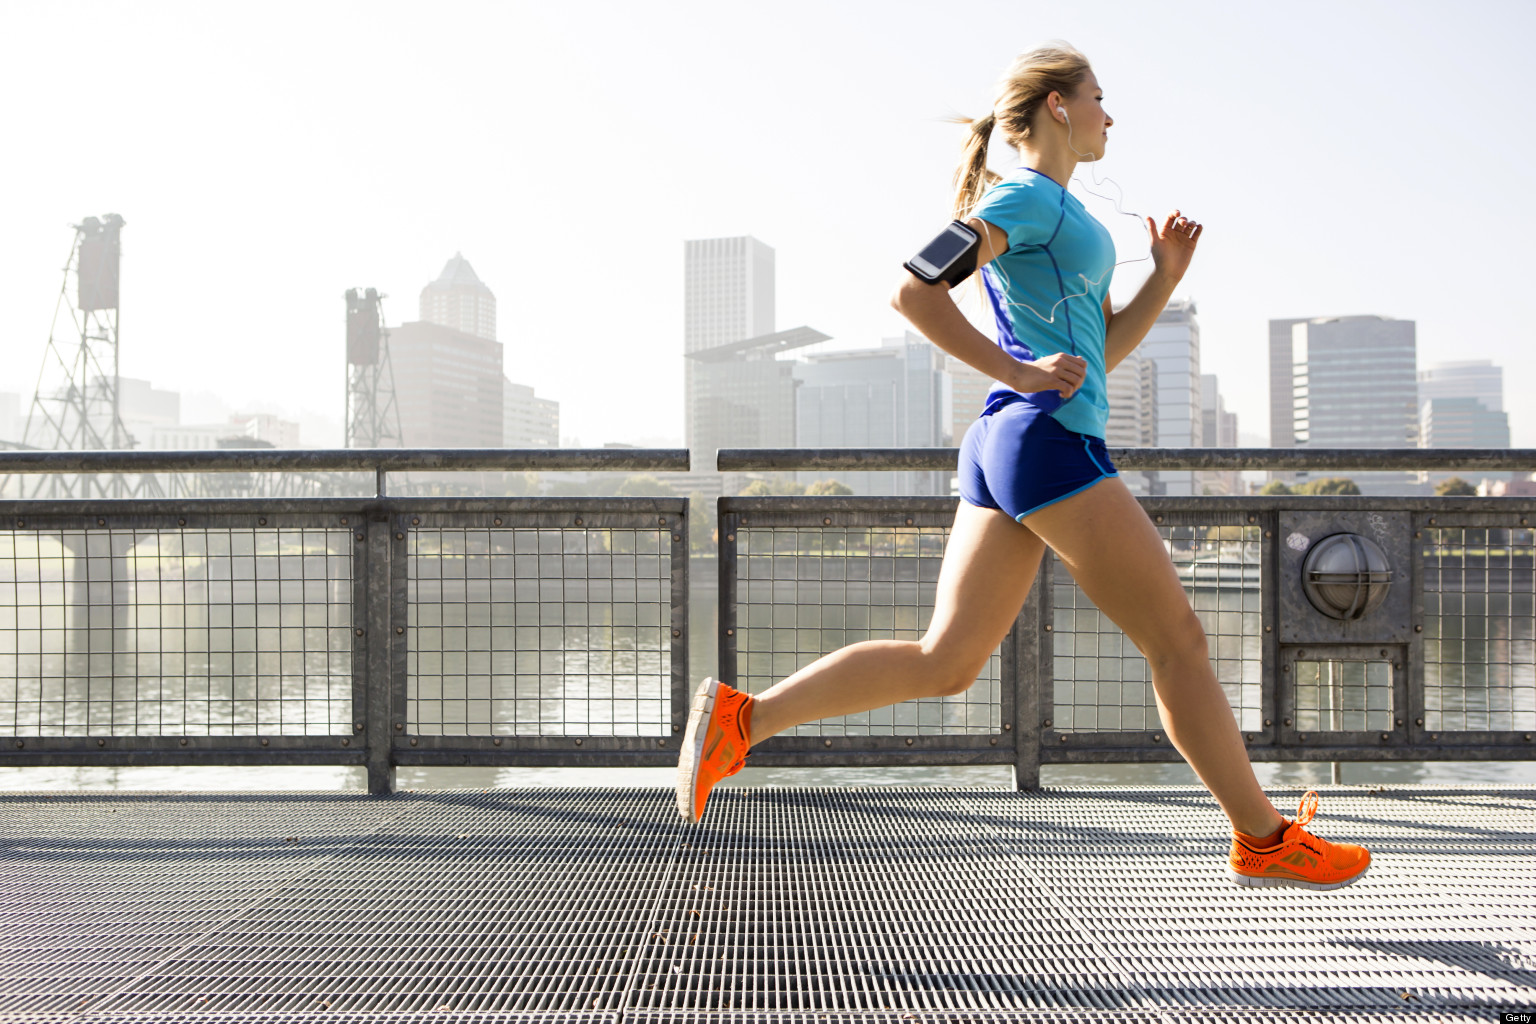 Get Pumped Your Top 25 Workout Songs